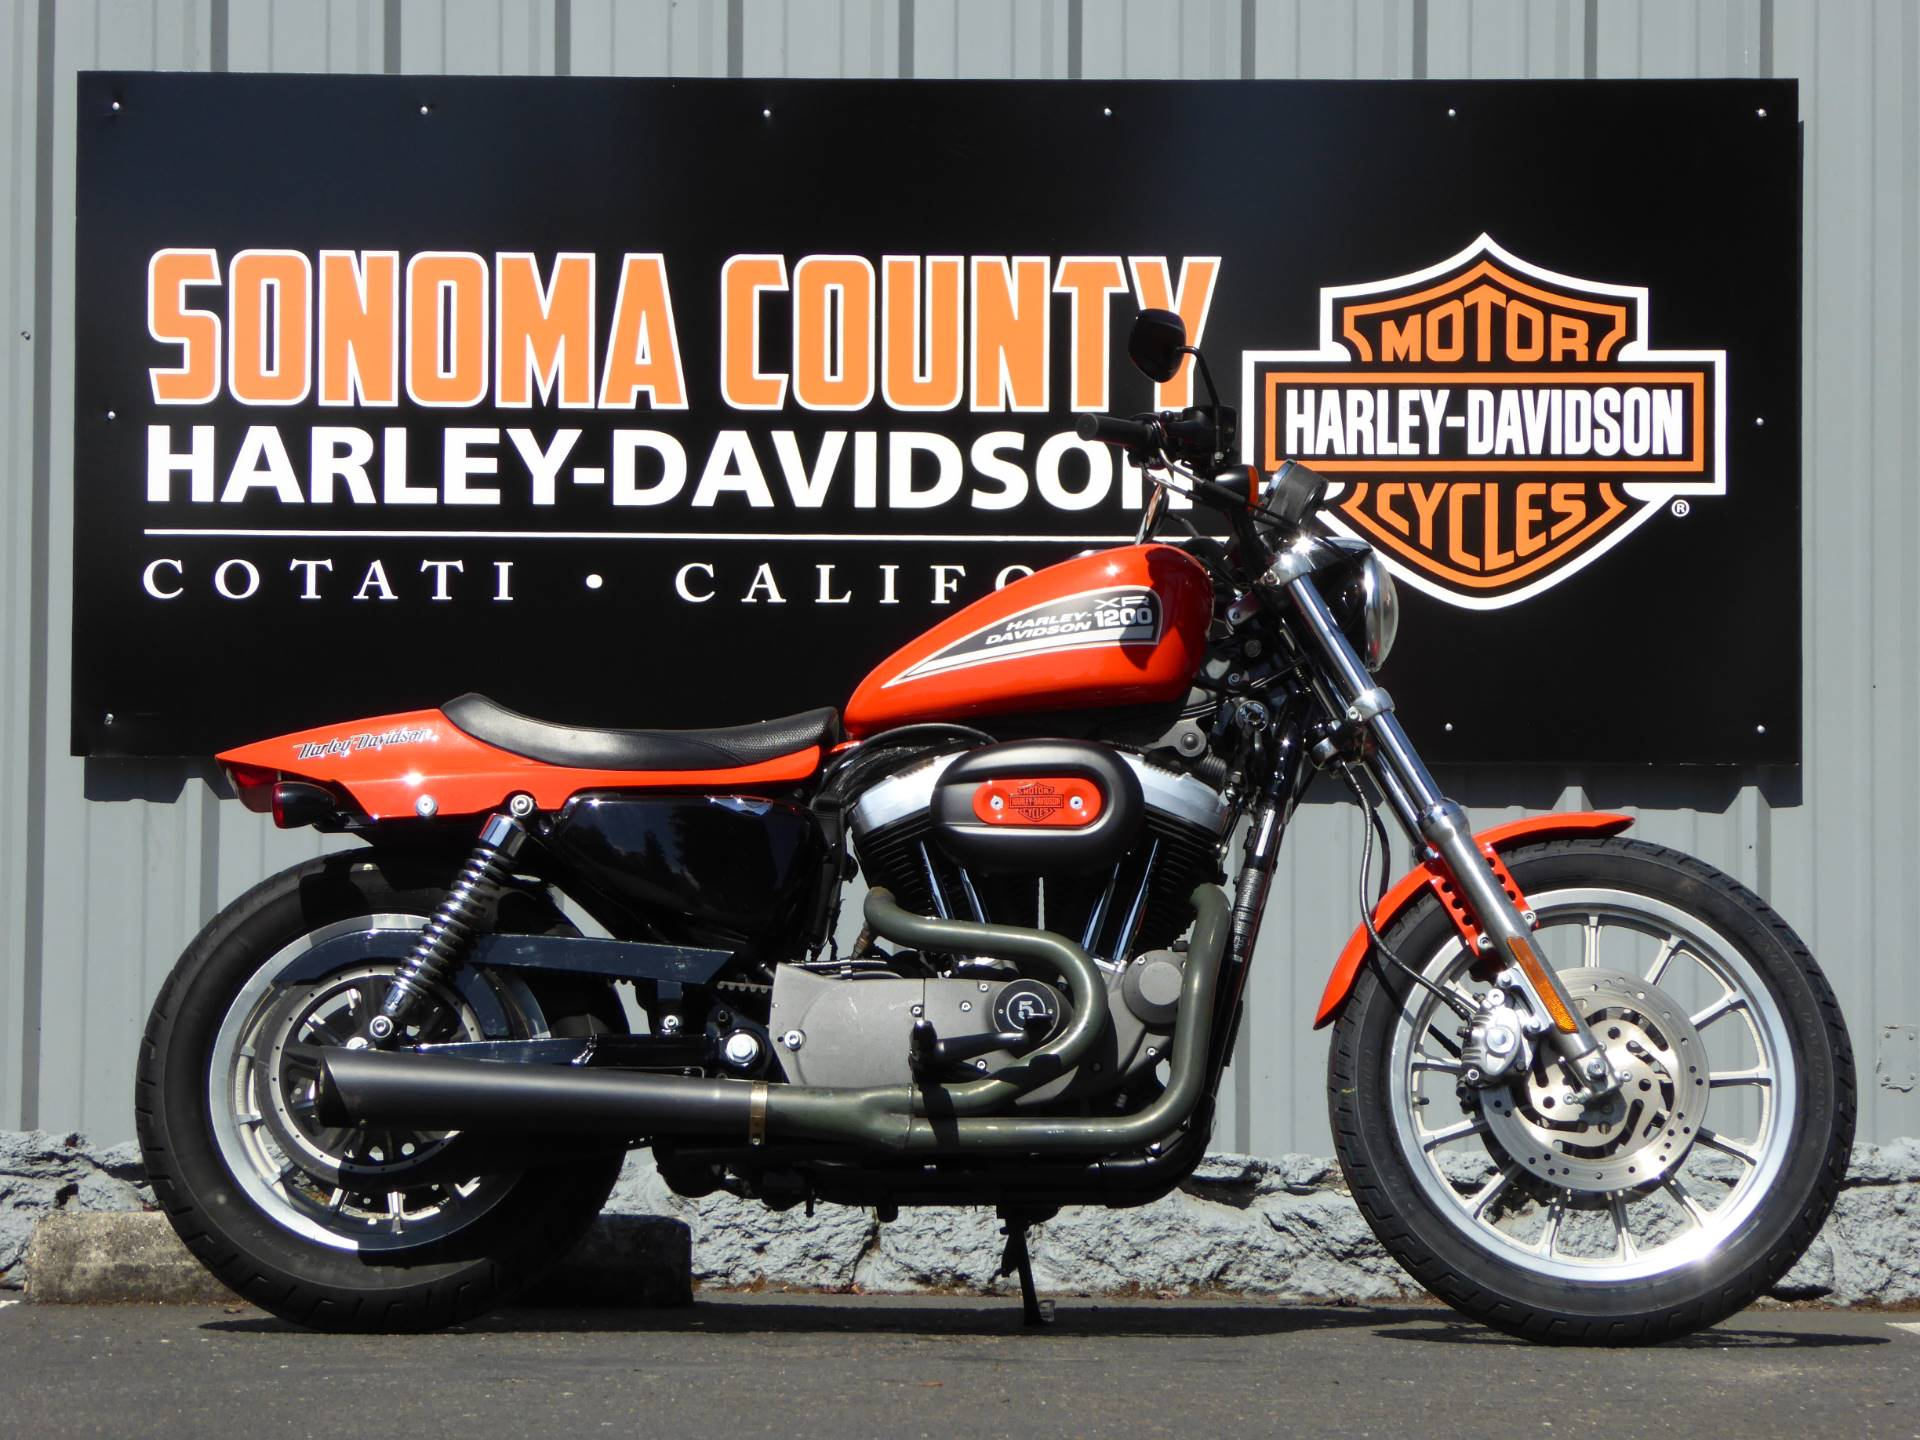 2009 Harley-Davidson XL1200N SPORTSTER NIGHTSTER in Cotati, California - Photo 1